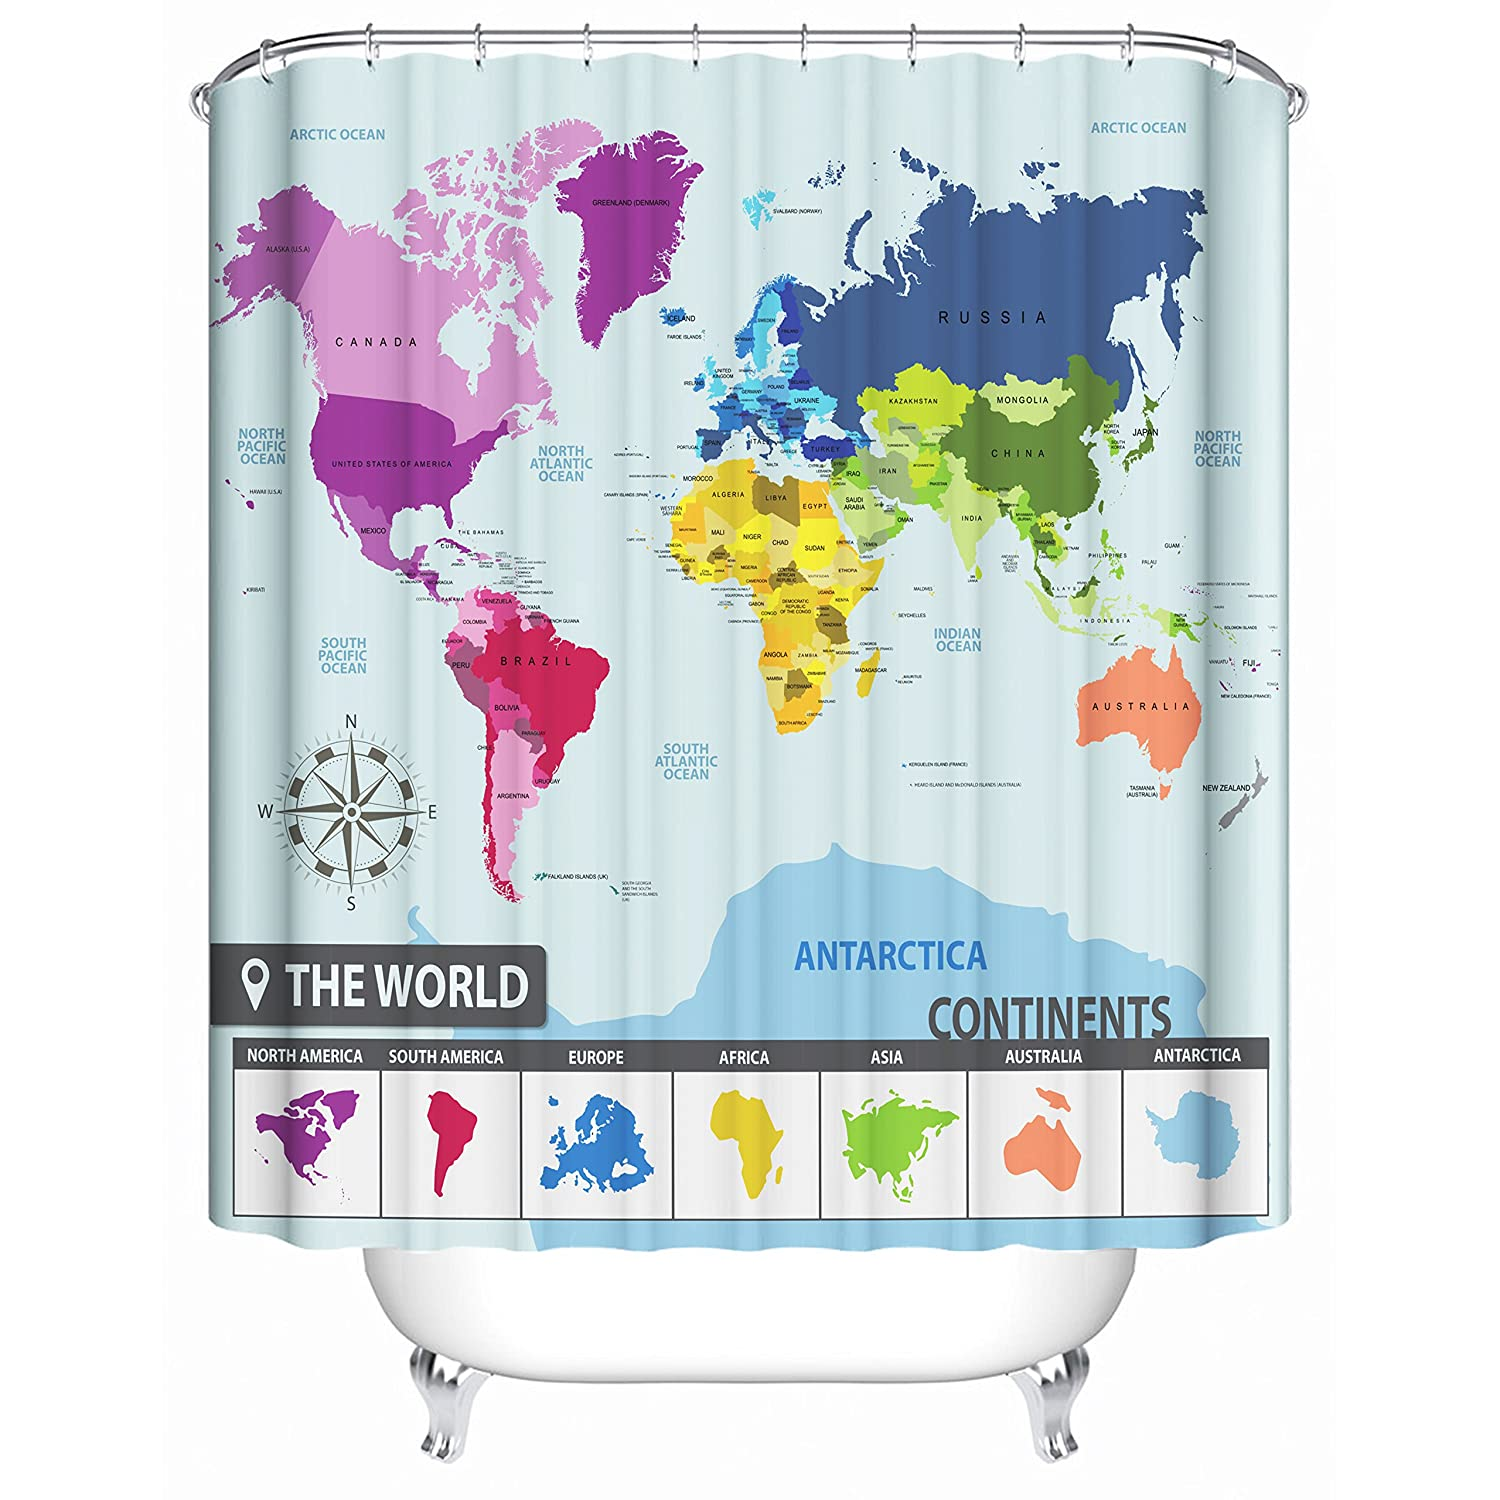 Amazon world map shower curtain 71 x 71 inches with 12 sturdy amazon world map shower curtain 71 x 71 inches with 12 sturdy hooks premium quality woven polyester fabric colorful maps of countries and 7 gumiabroncs Gallery